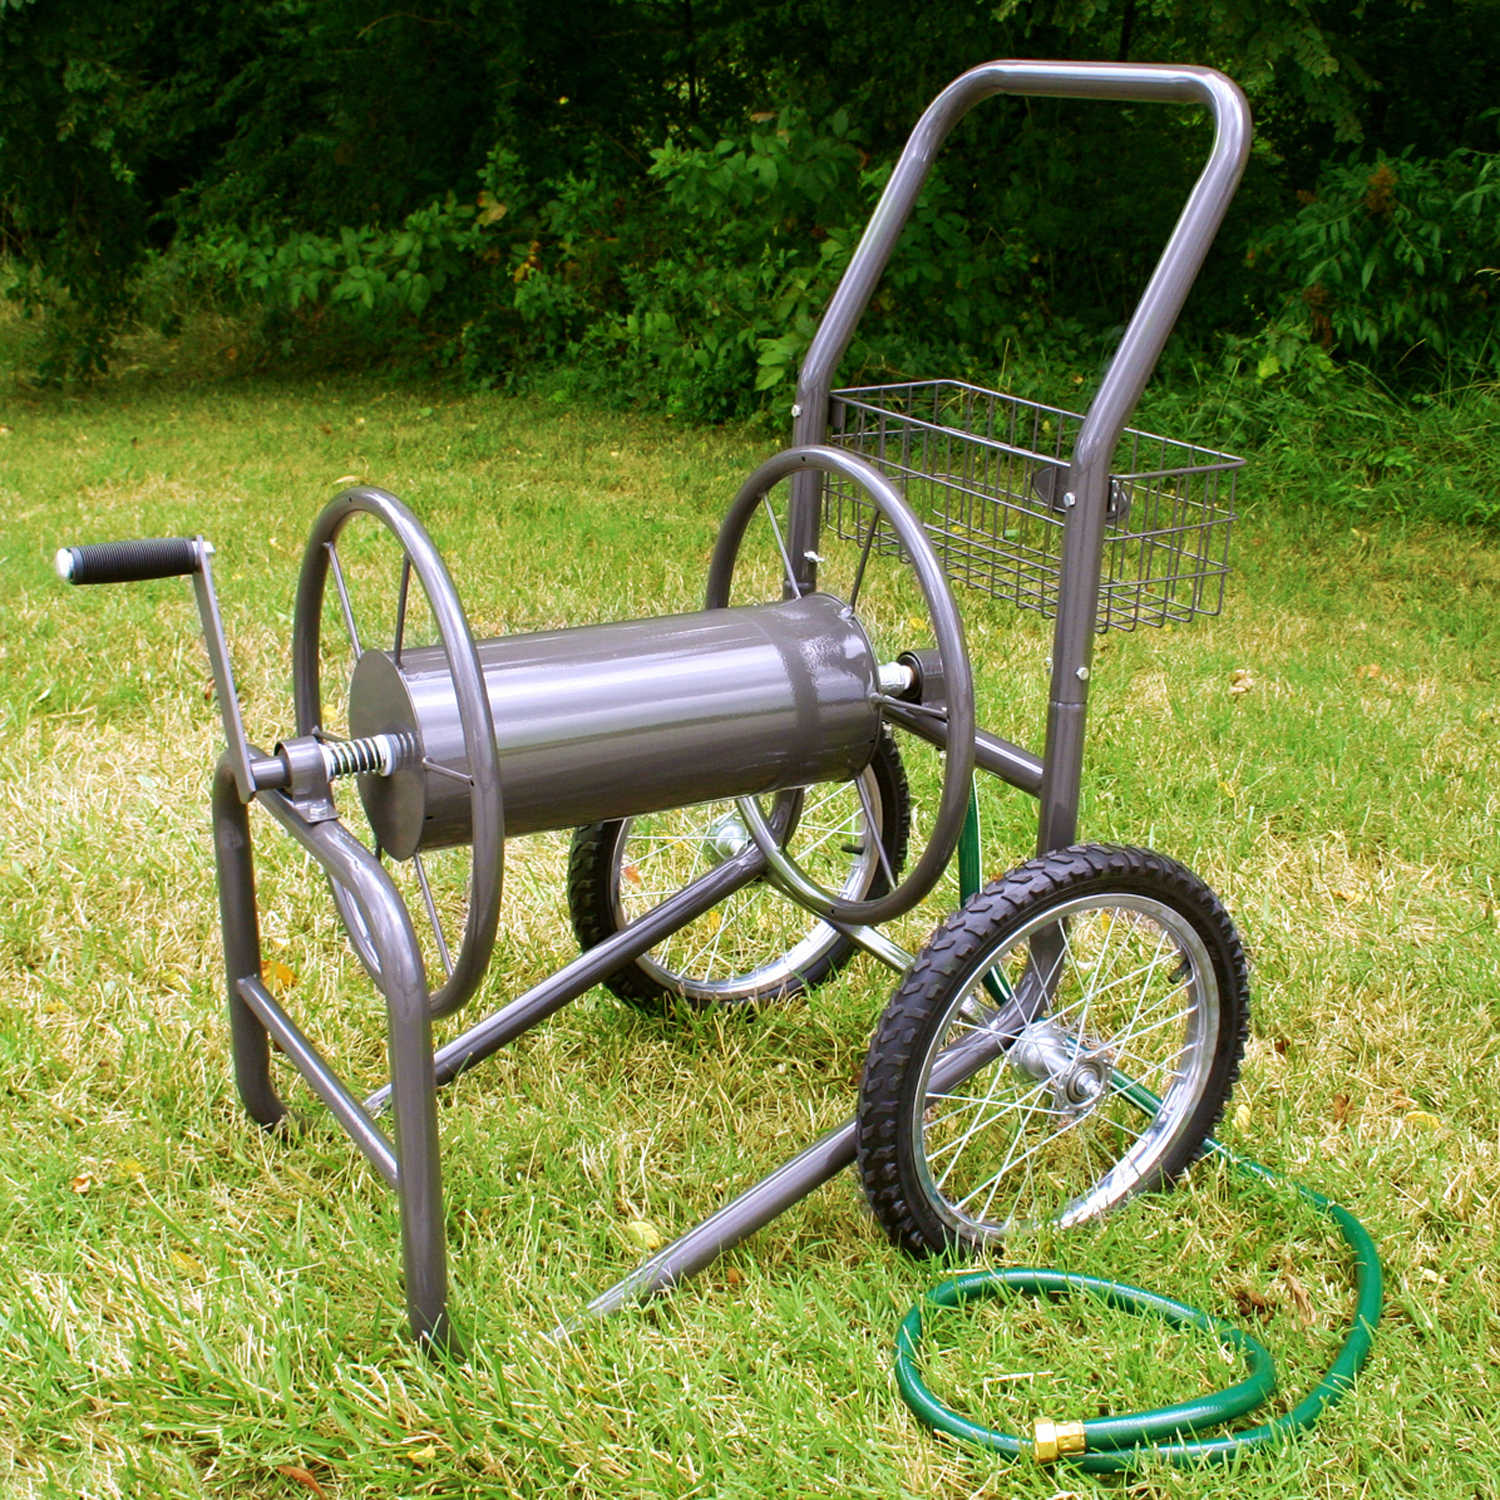 liberty garden industrial two wheel hose reel cart - Garden Hose Reel Cart